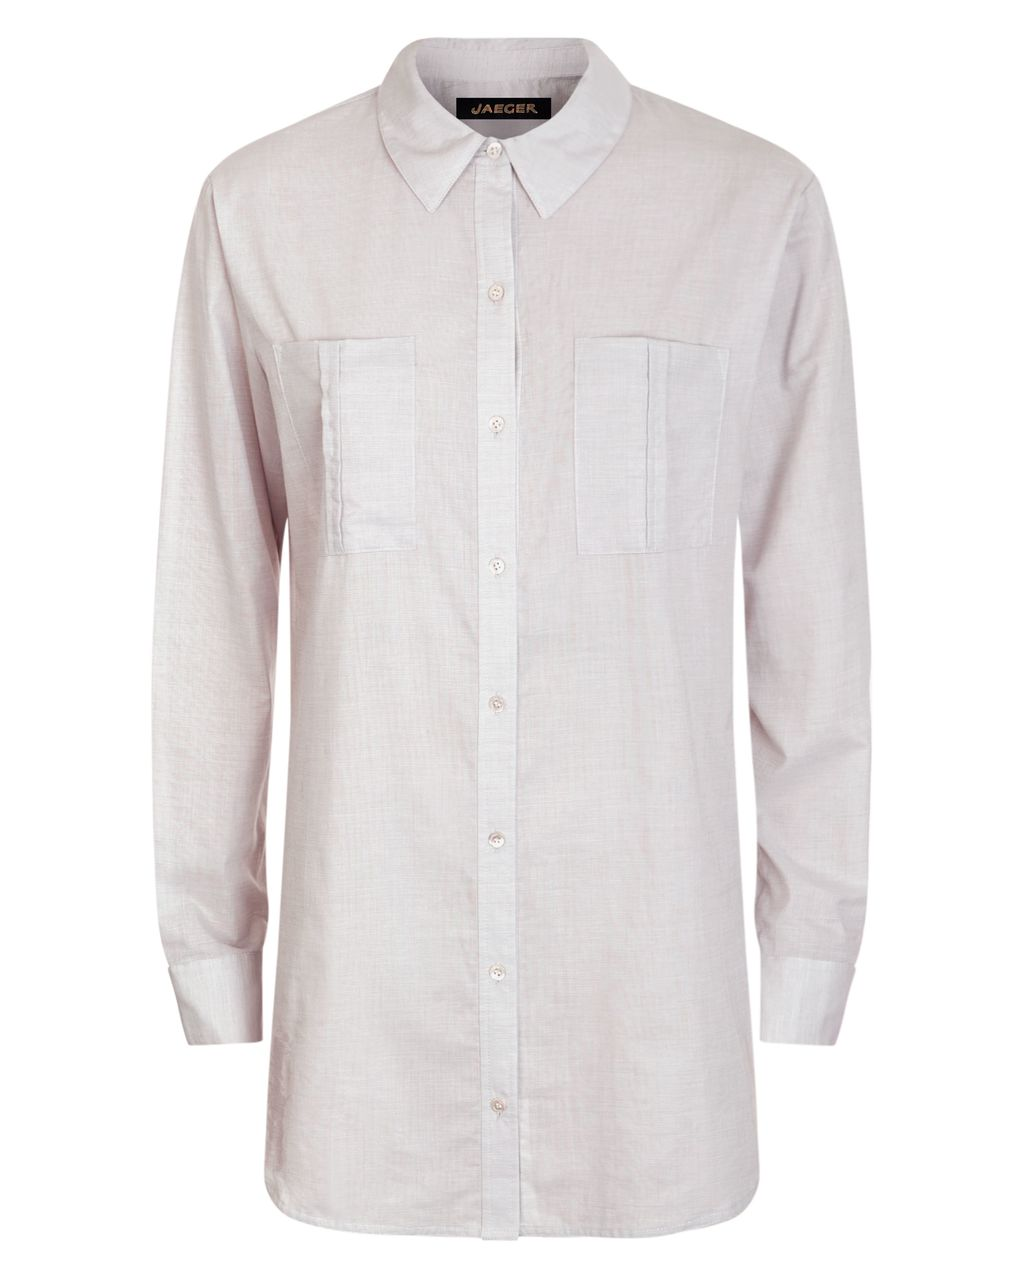 Cotton Oversized Shirt, White - neckline: shirt collar/peter pan/zip with opening; pattern: plain; length: below the bottom; style: shirt; predominant colour: ivory/cream; occasions: casual, creative work; fibres: cotton - 100%; fit: body skimming; sleeve length: long sleeve; sleeve style: standard; texture group: cotton feel fabrics; pattern type: fabric; multicoloured: multicoloured; season: s/s 2016; wardrobe: basic